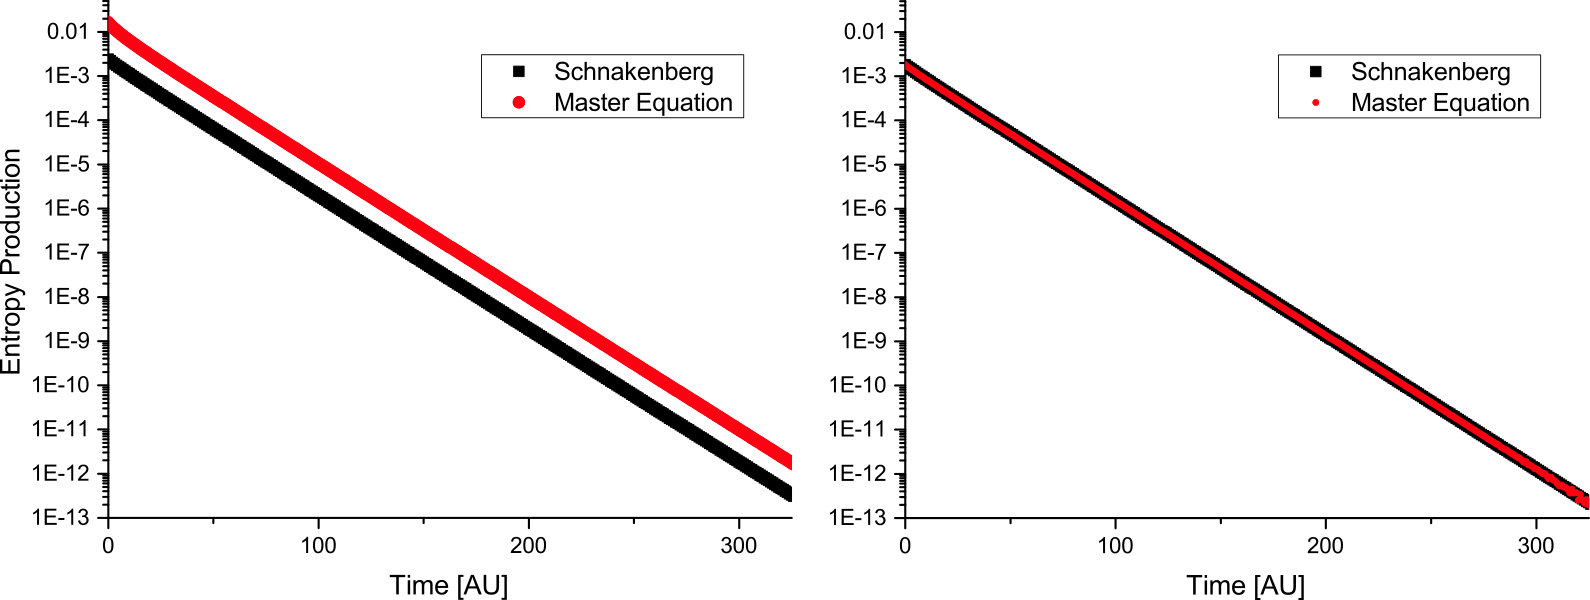 Left: Temporal evolution of the actual entropy production (red) and the prediction by Schnakenberg (black) in a random Markov process with